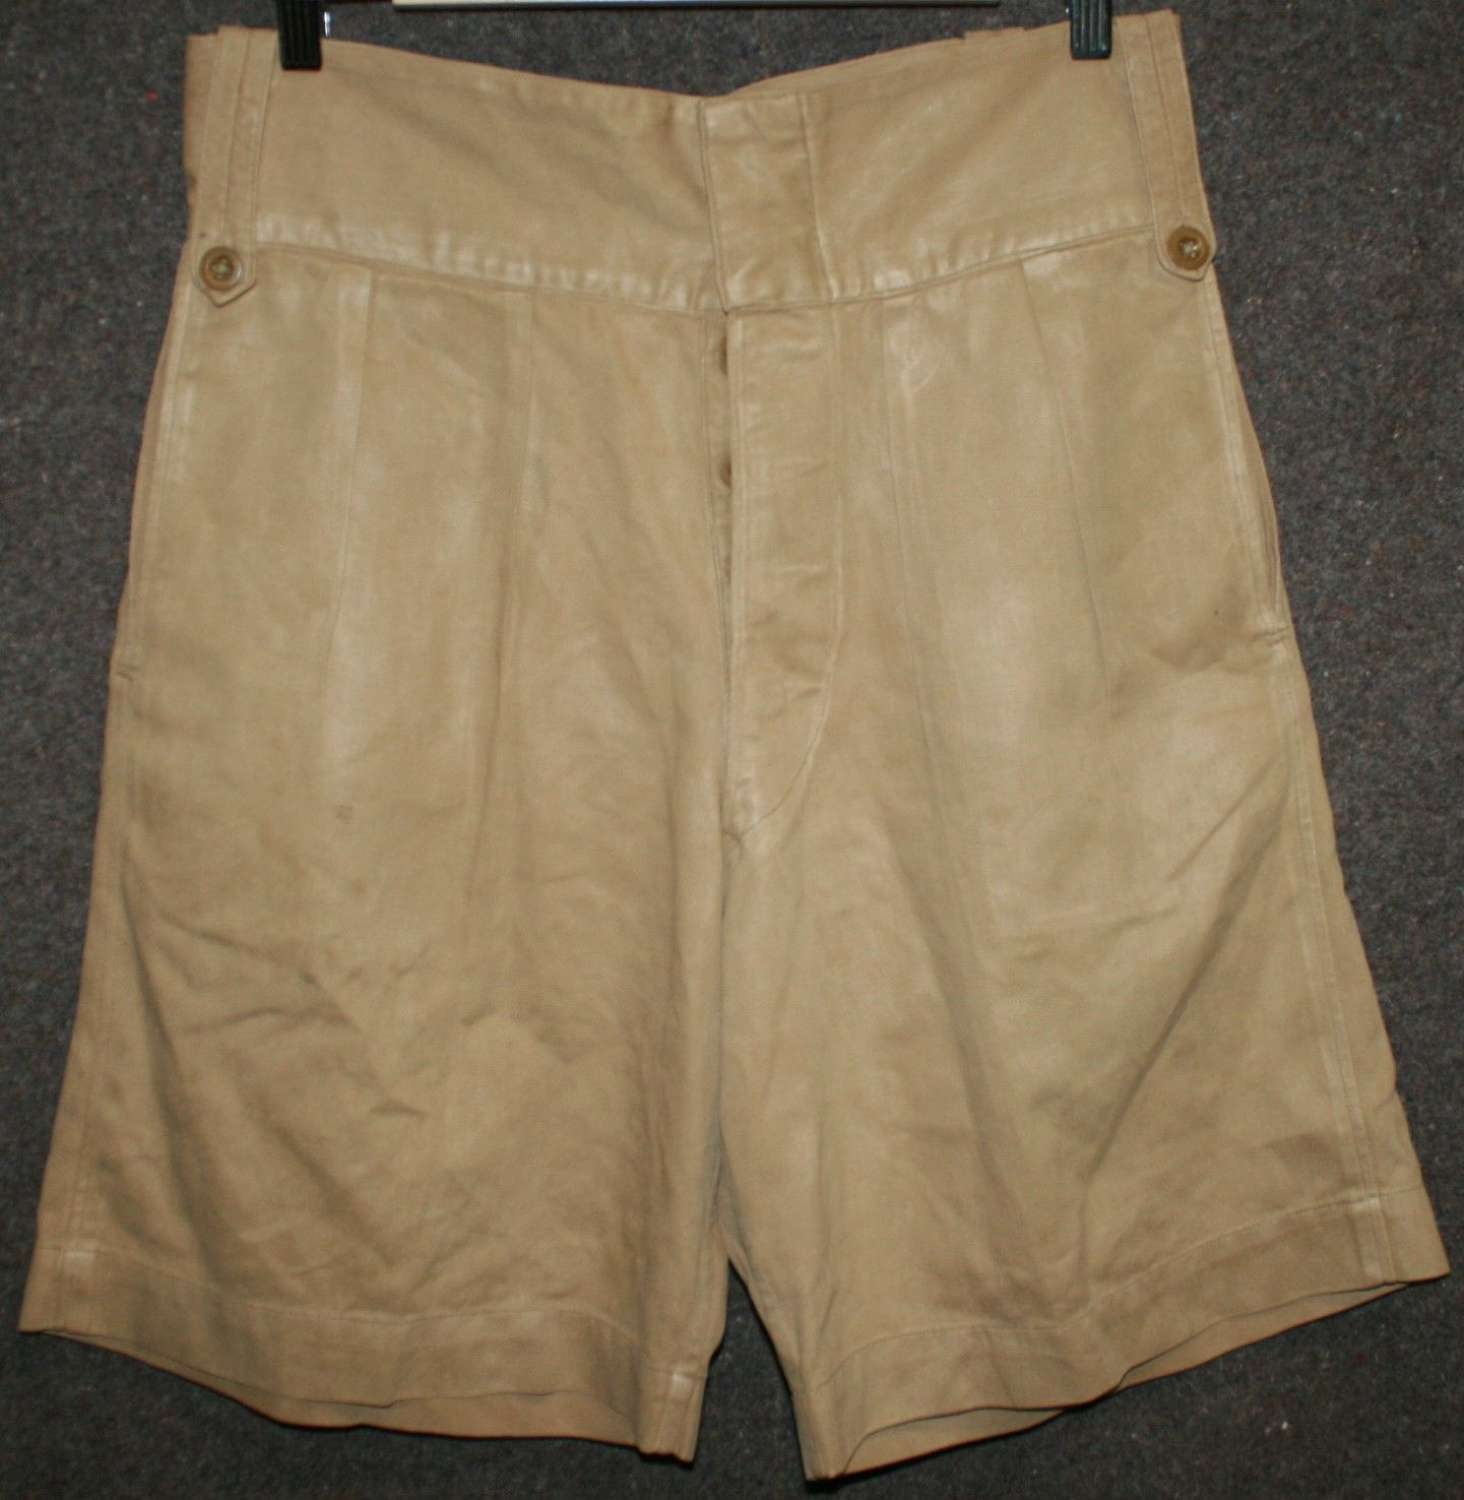 A PAIR OF BRITISH ARMY ISSUE KD SHORTS